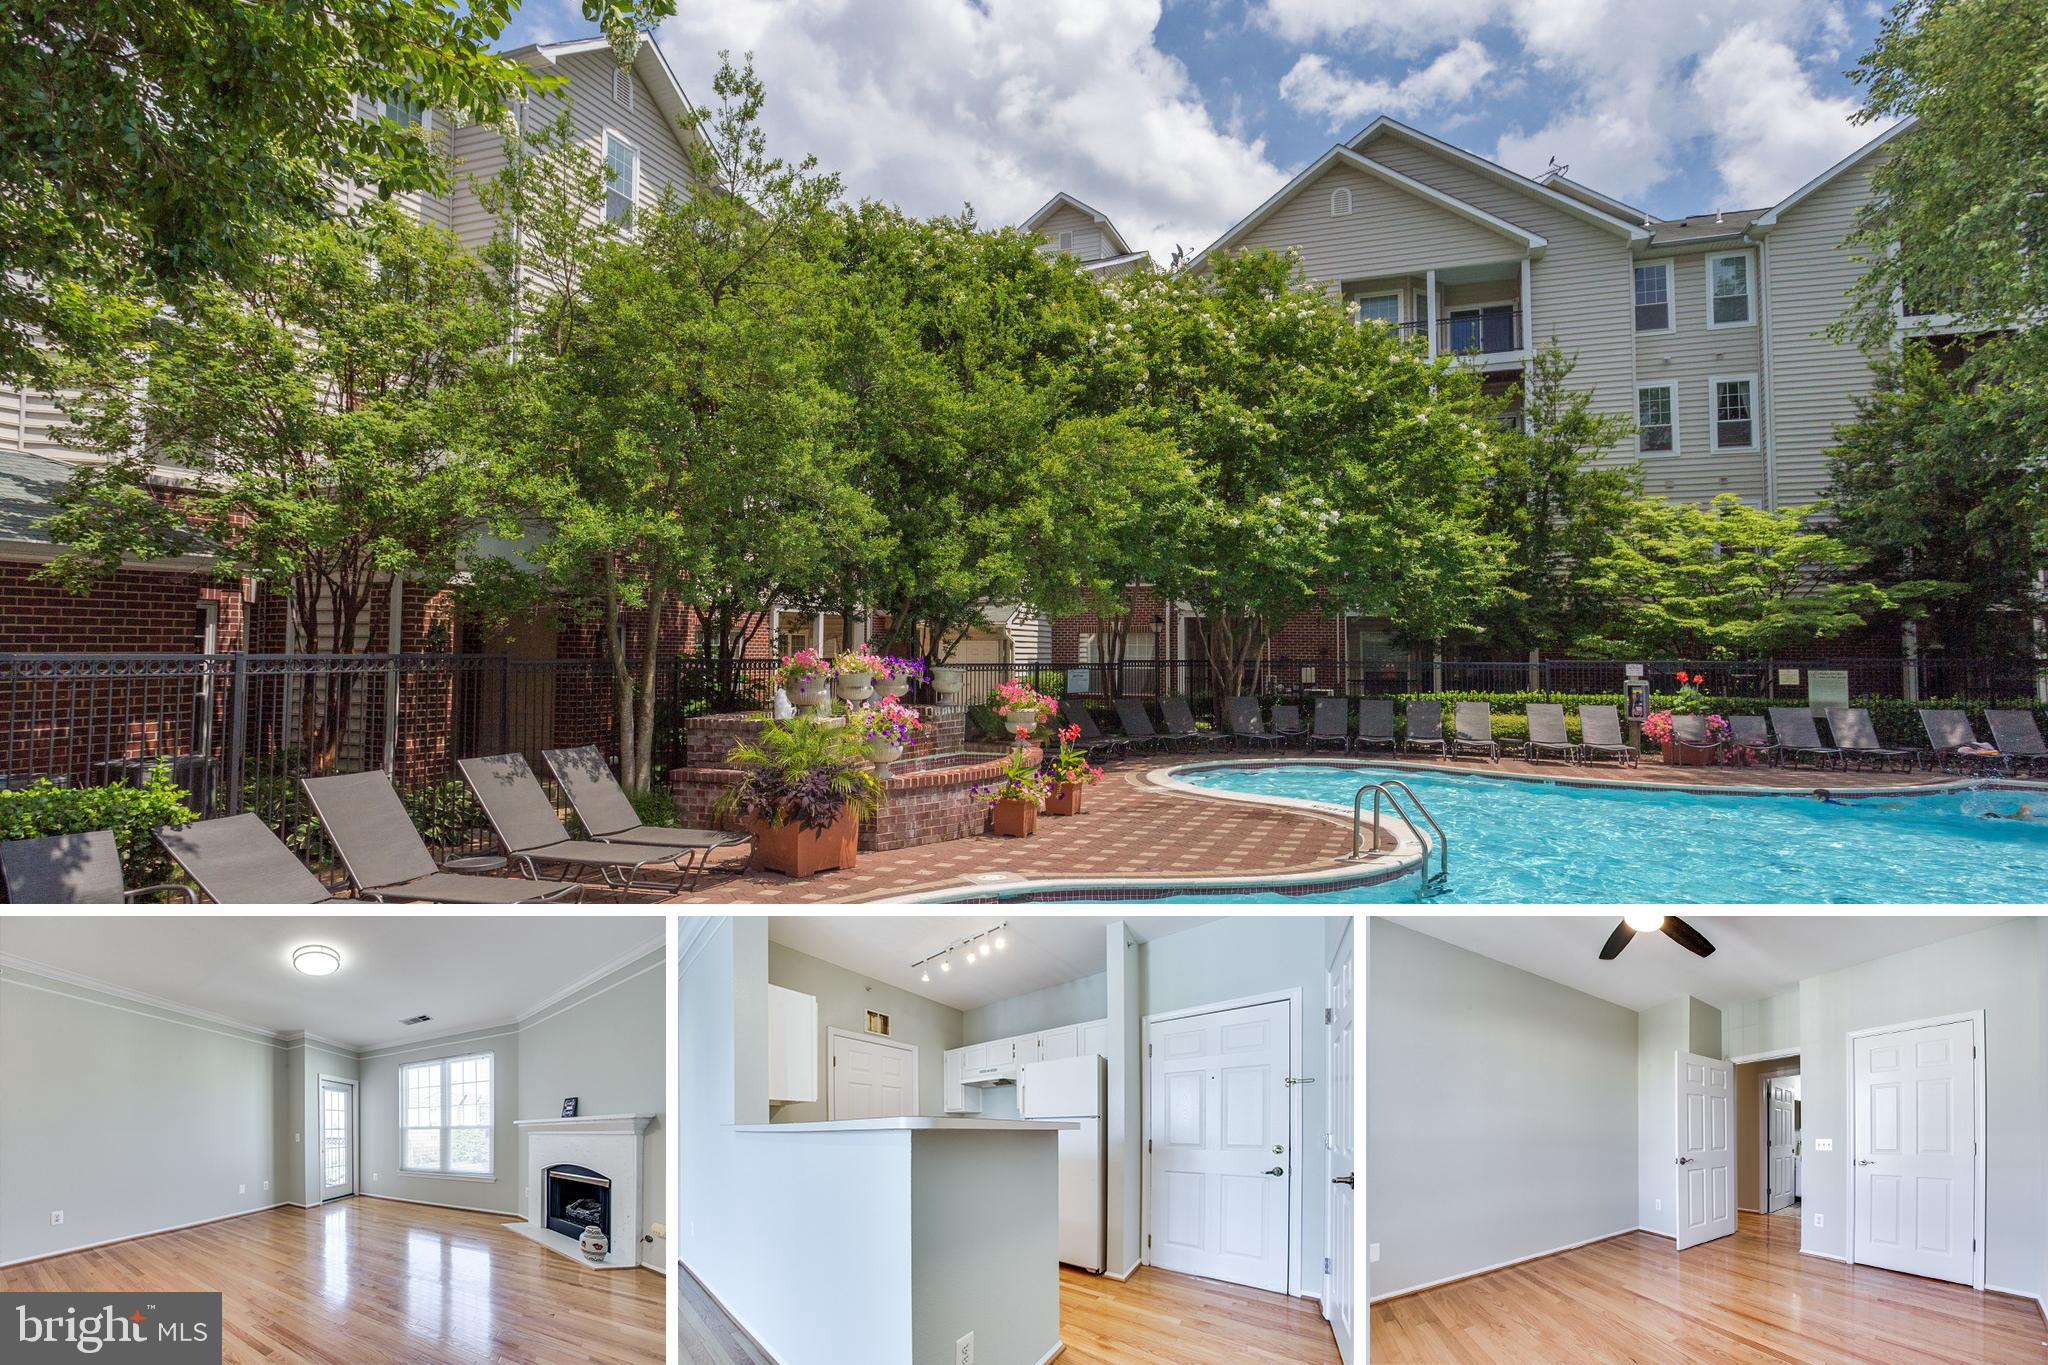 OPEN HOUSE SAT 10/23 12-2pm. Large and wonderful updated top floor 1 bedroom condo - walk to McLean Silver Line metro + Wegmans across the street. The 4th floor unit has garage parking, wood floors, new paint and fixtures, newer windows and is in a controlled access building. 1 garage parking spot(#67) conveys. You will also get 2 parking guest tags.   HVAC,  washer, dryer and dishwasher are new in 2021.   The Gates of McLean is a gated community with great amenities like an outdoor swimming pool, gym, clubhouse, sports court, grill area and walking paths. Minutes to everything in Tysons and minutes from toll road.